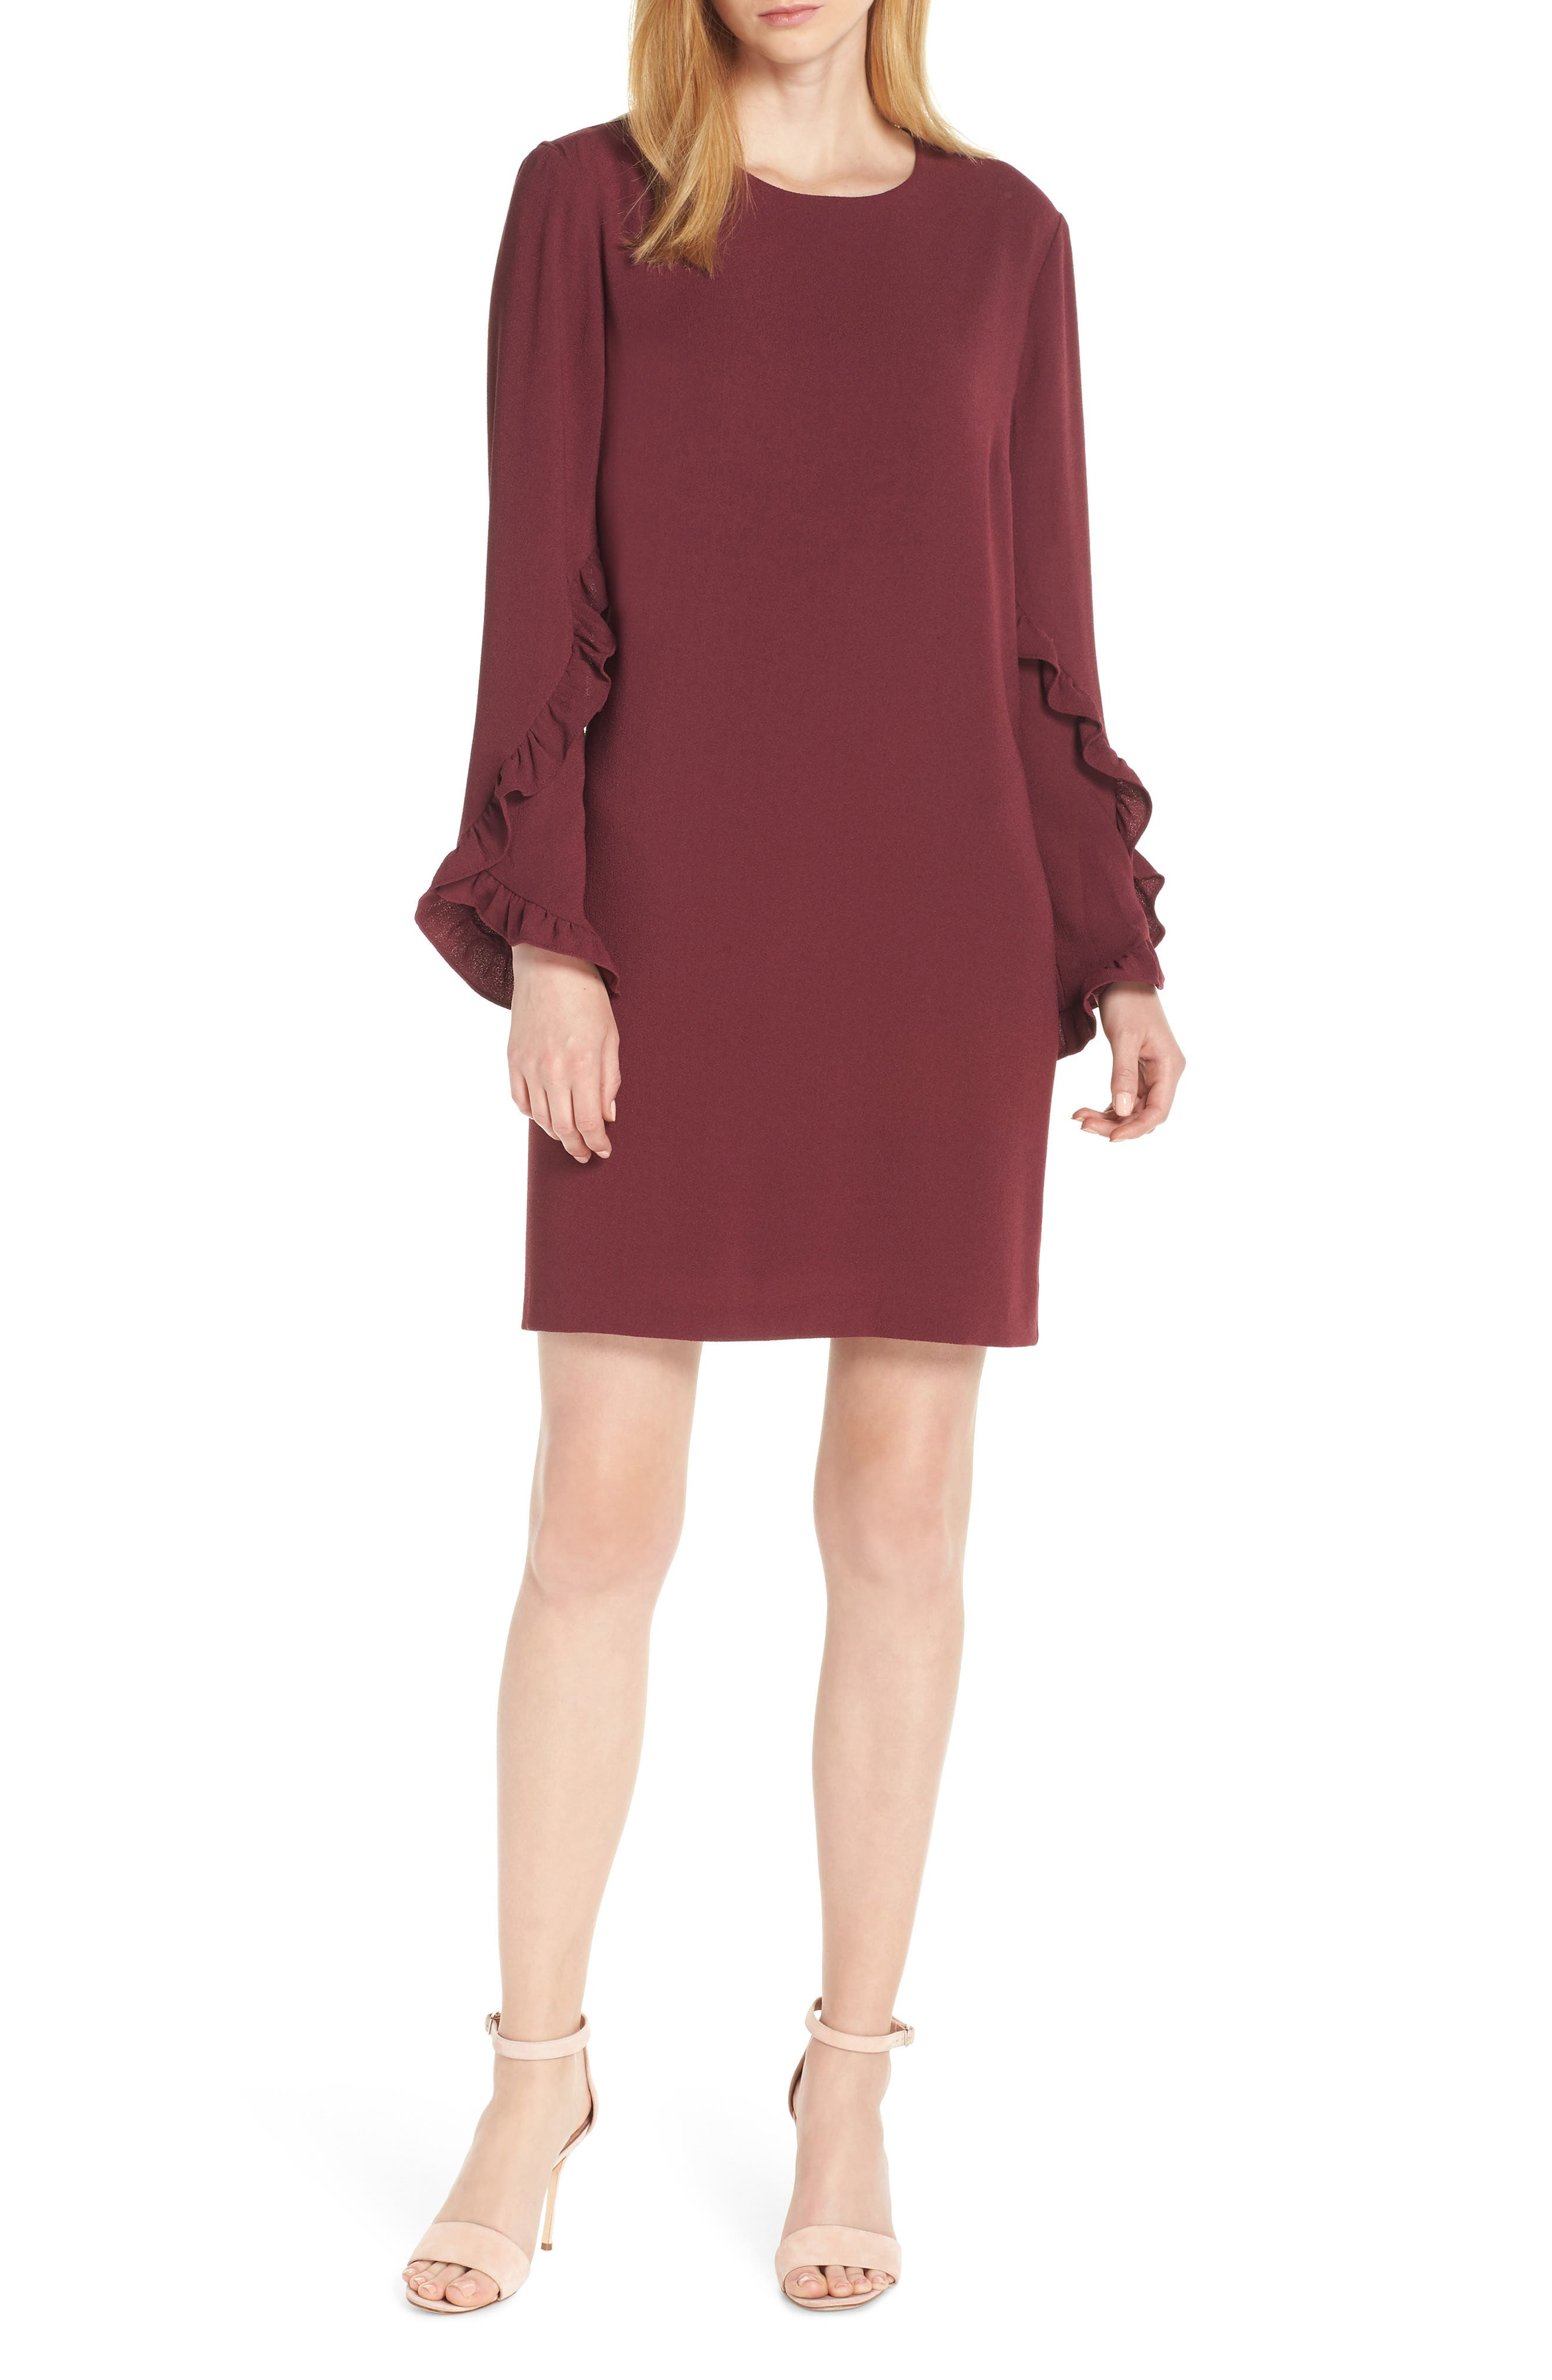 CHARLES HENRY Tulip Sleeve Shift in Bordeux